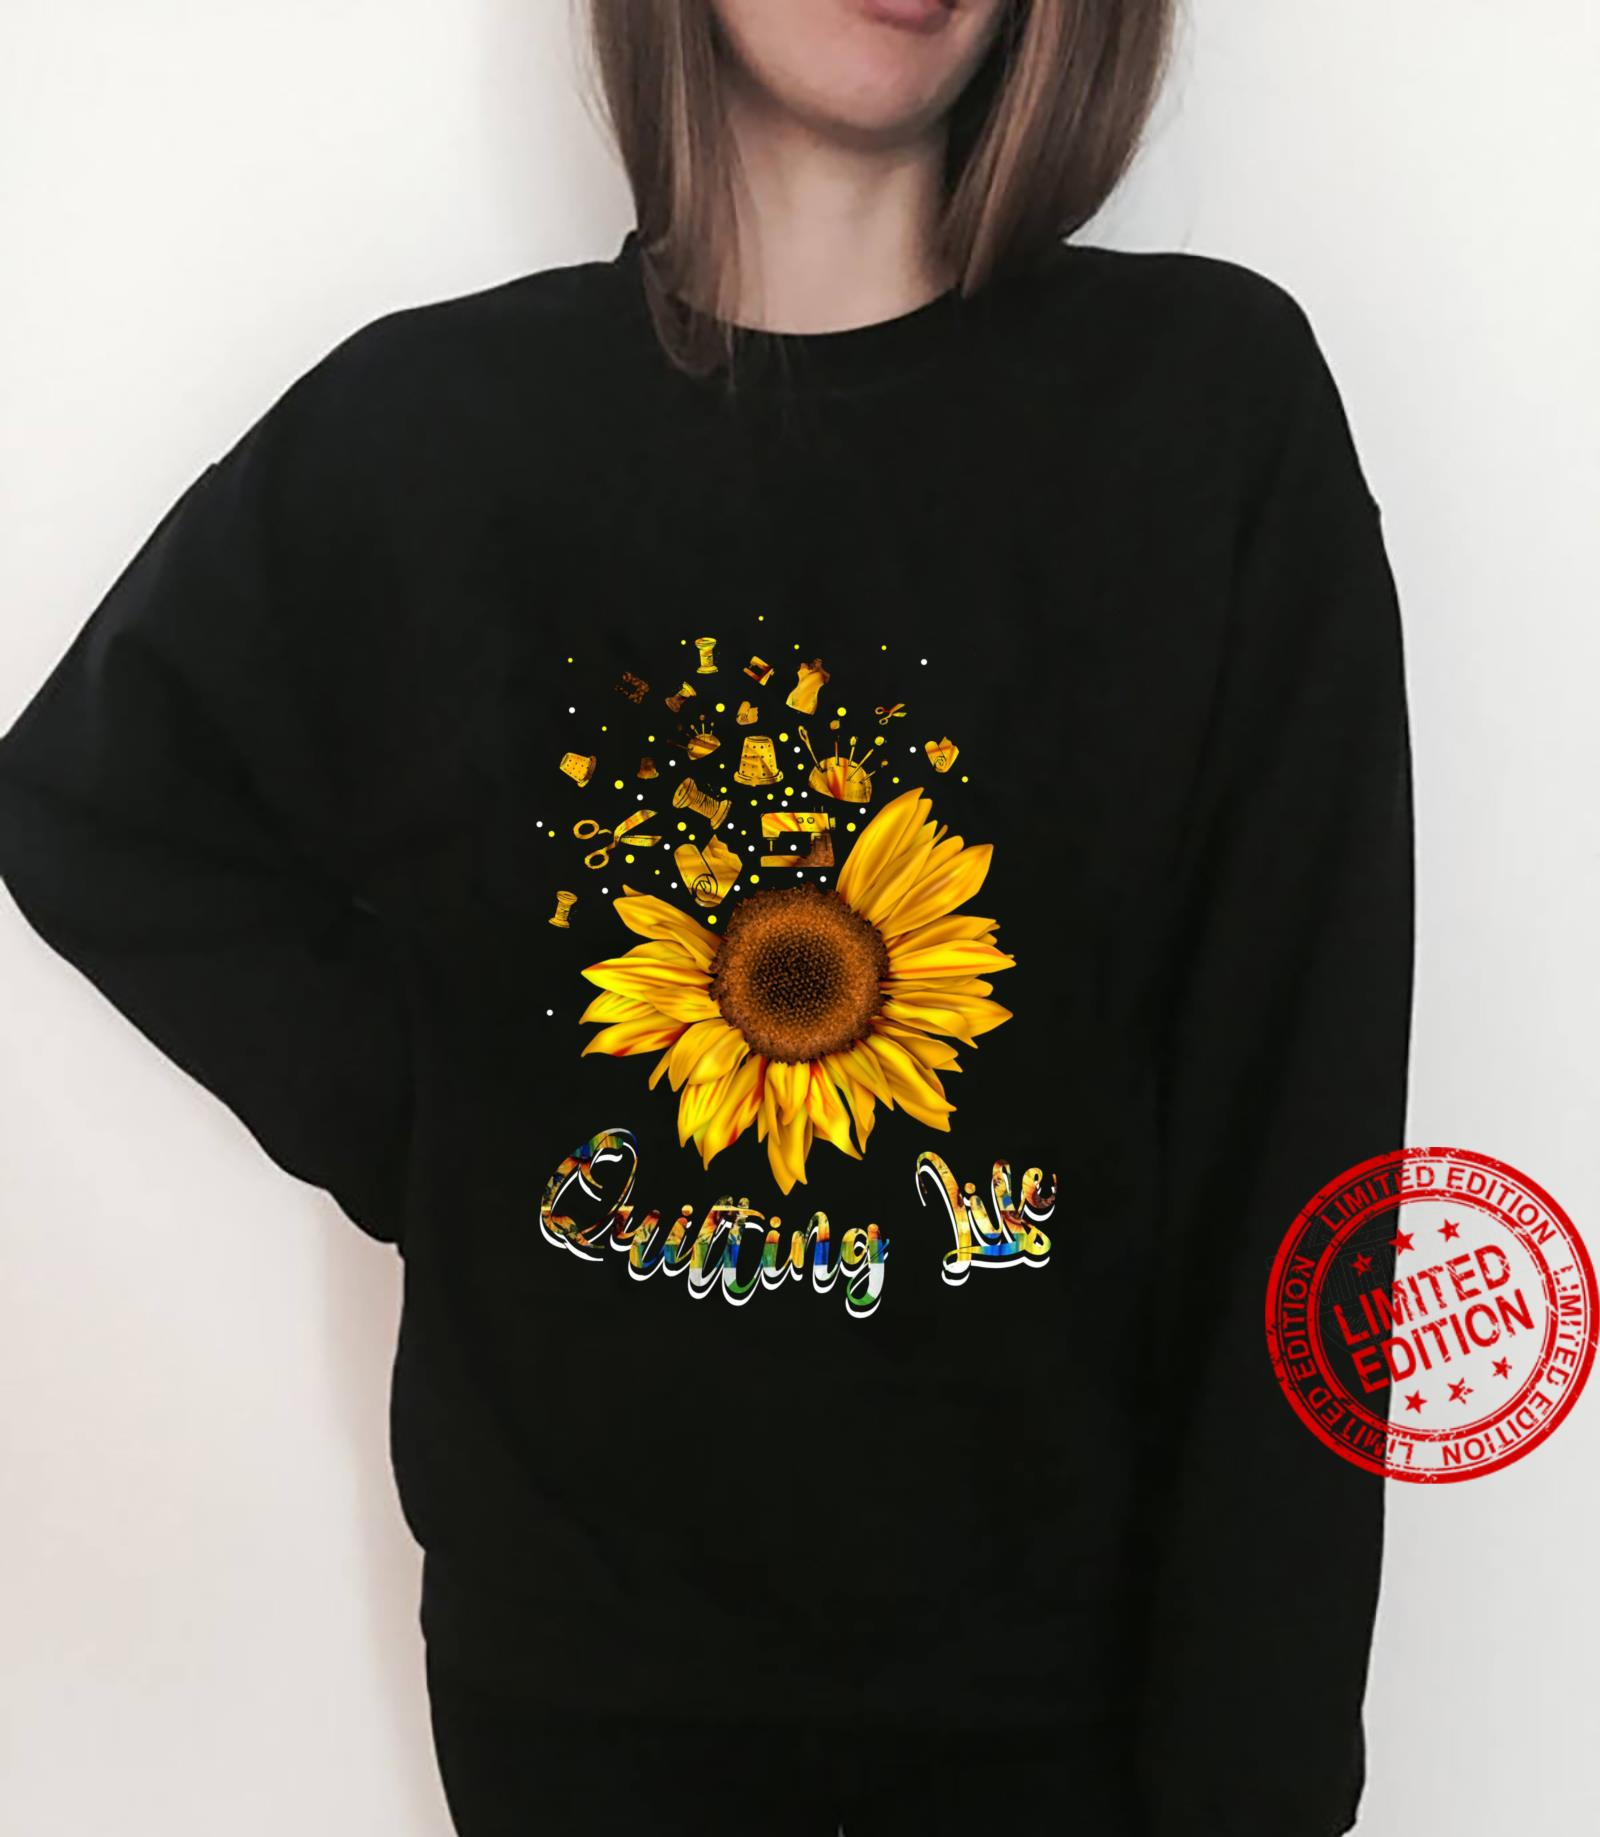 Quilting life love Sun Flower Shirt sweater